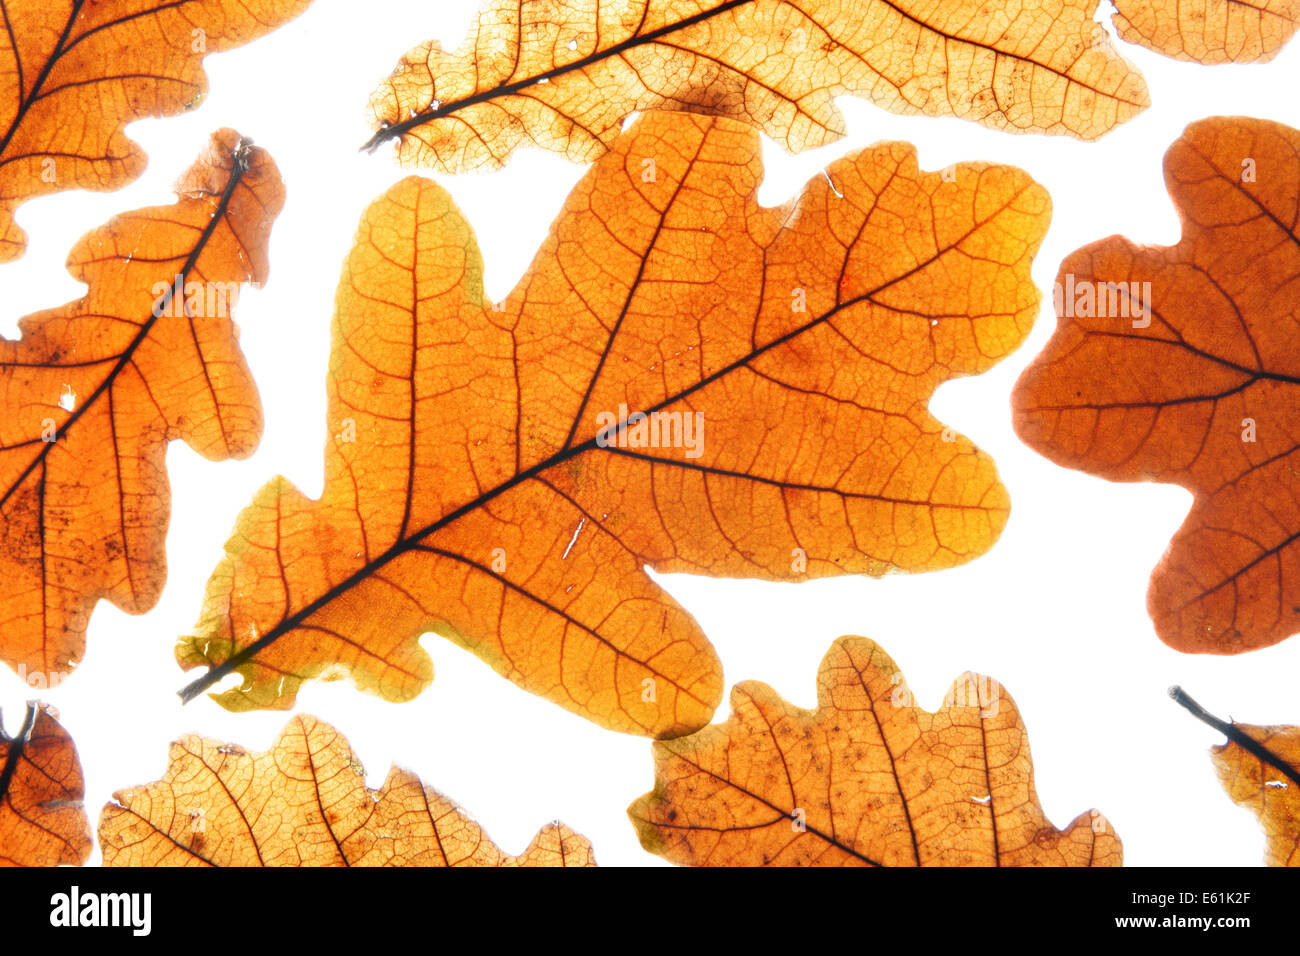 Lots of dry oak leaves isolated over white background Stock Photo